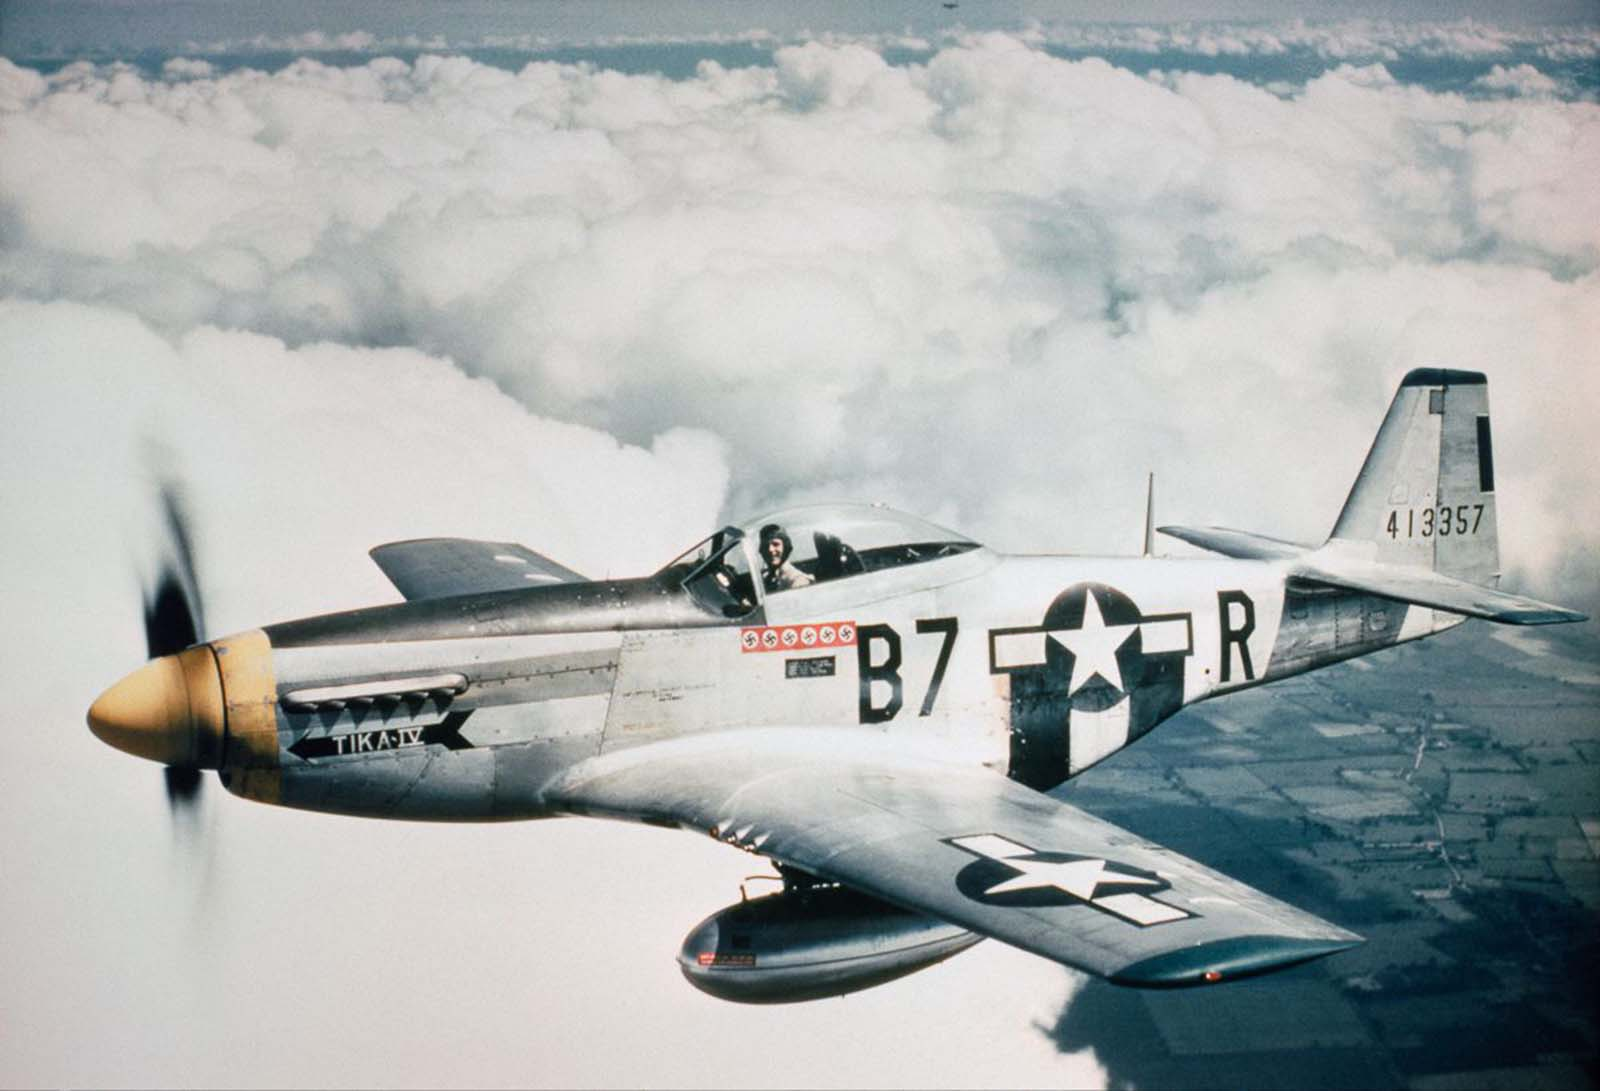 Lieutenant Vernon R Richards of the 361st Fighter Group flies his P-51D Mustang, nicknamed 'Tika IV', during a bomber escort mission. 1944.